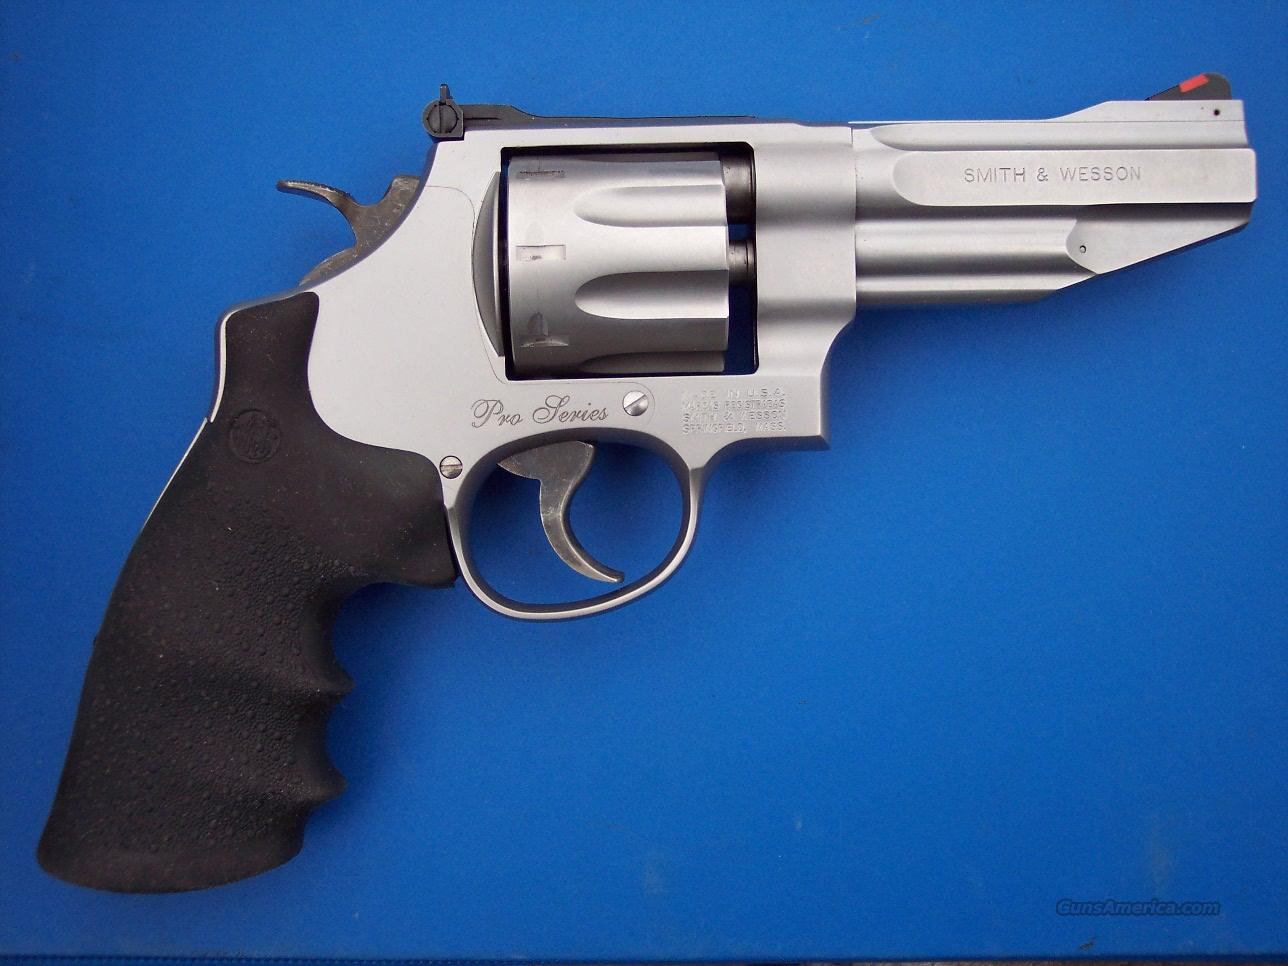 "Smith & Wesson 627 Pro Series 8 shot .357 Mag 4"" SS *NEW*  Guns > Pistols > Smith & Wesson Revolvers > Performance Center"